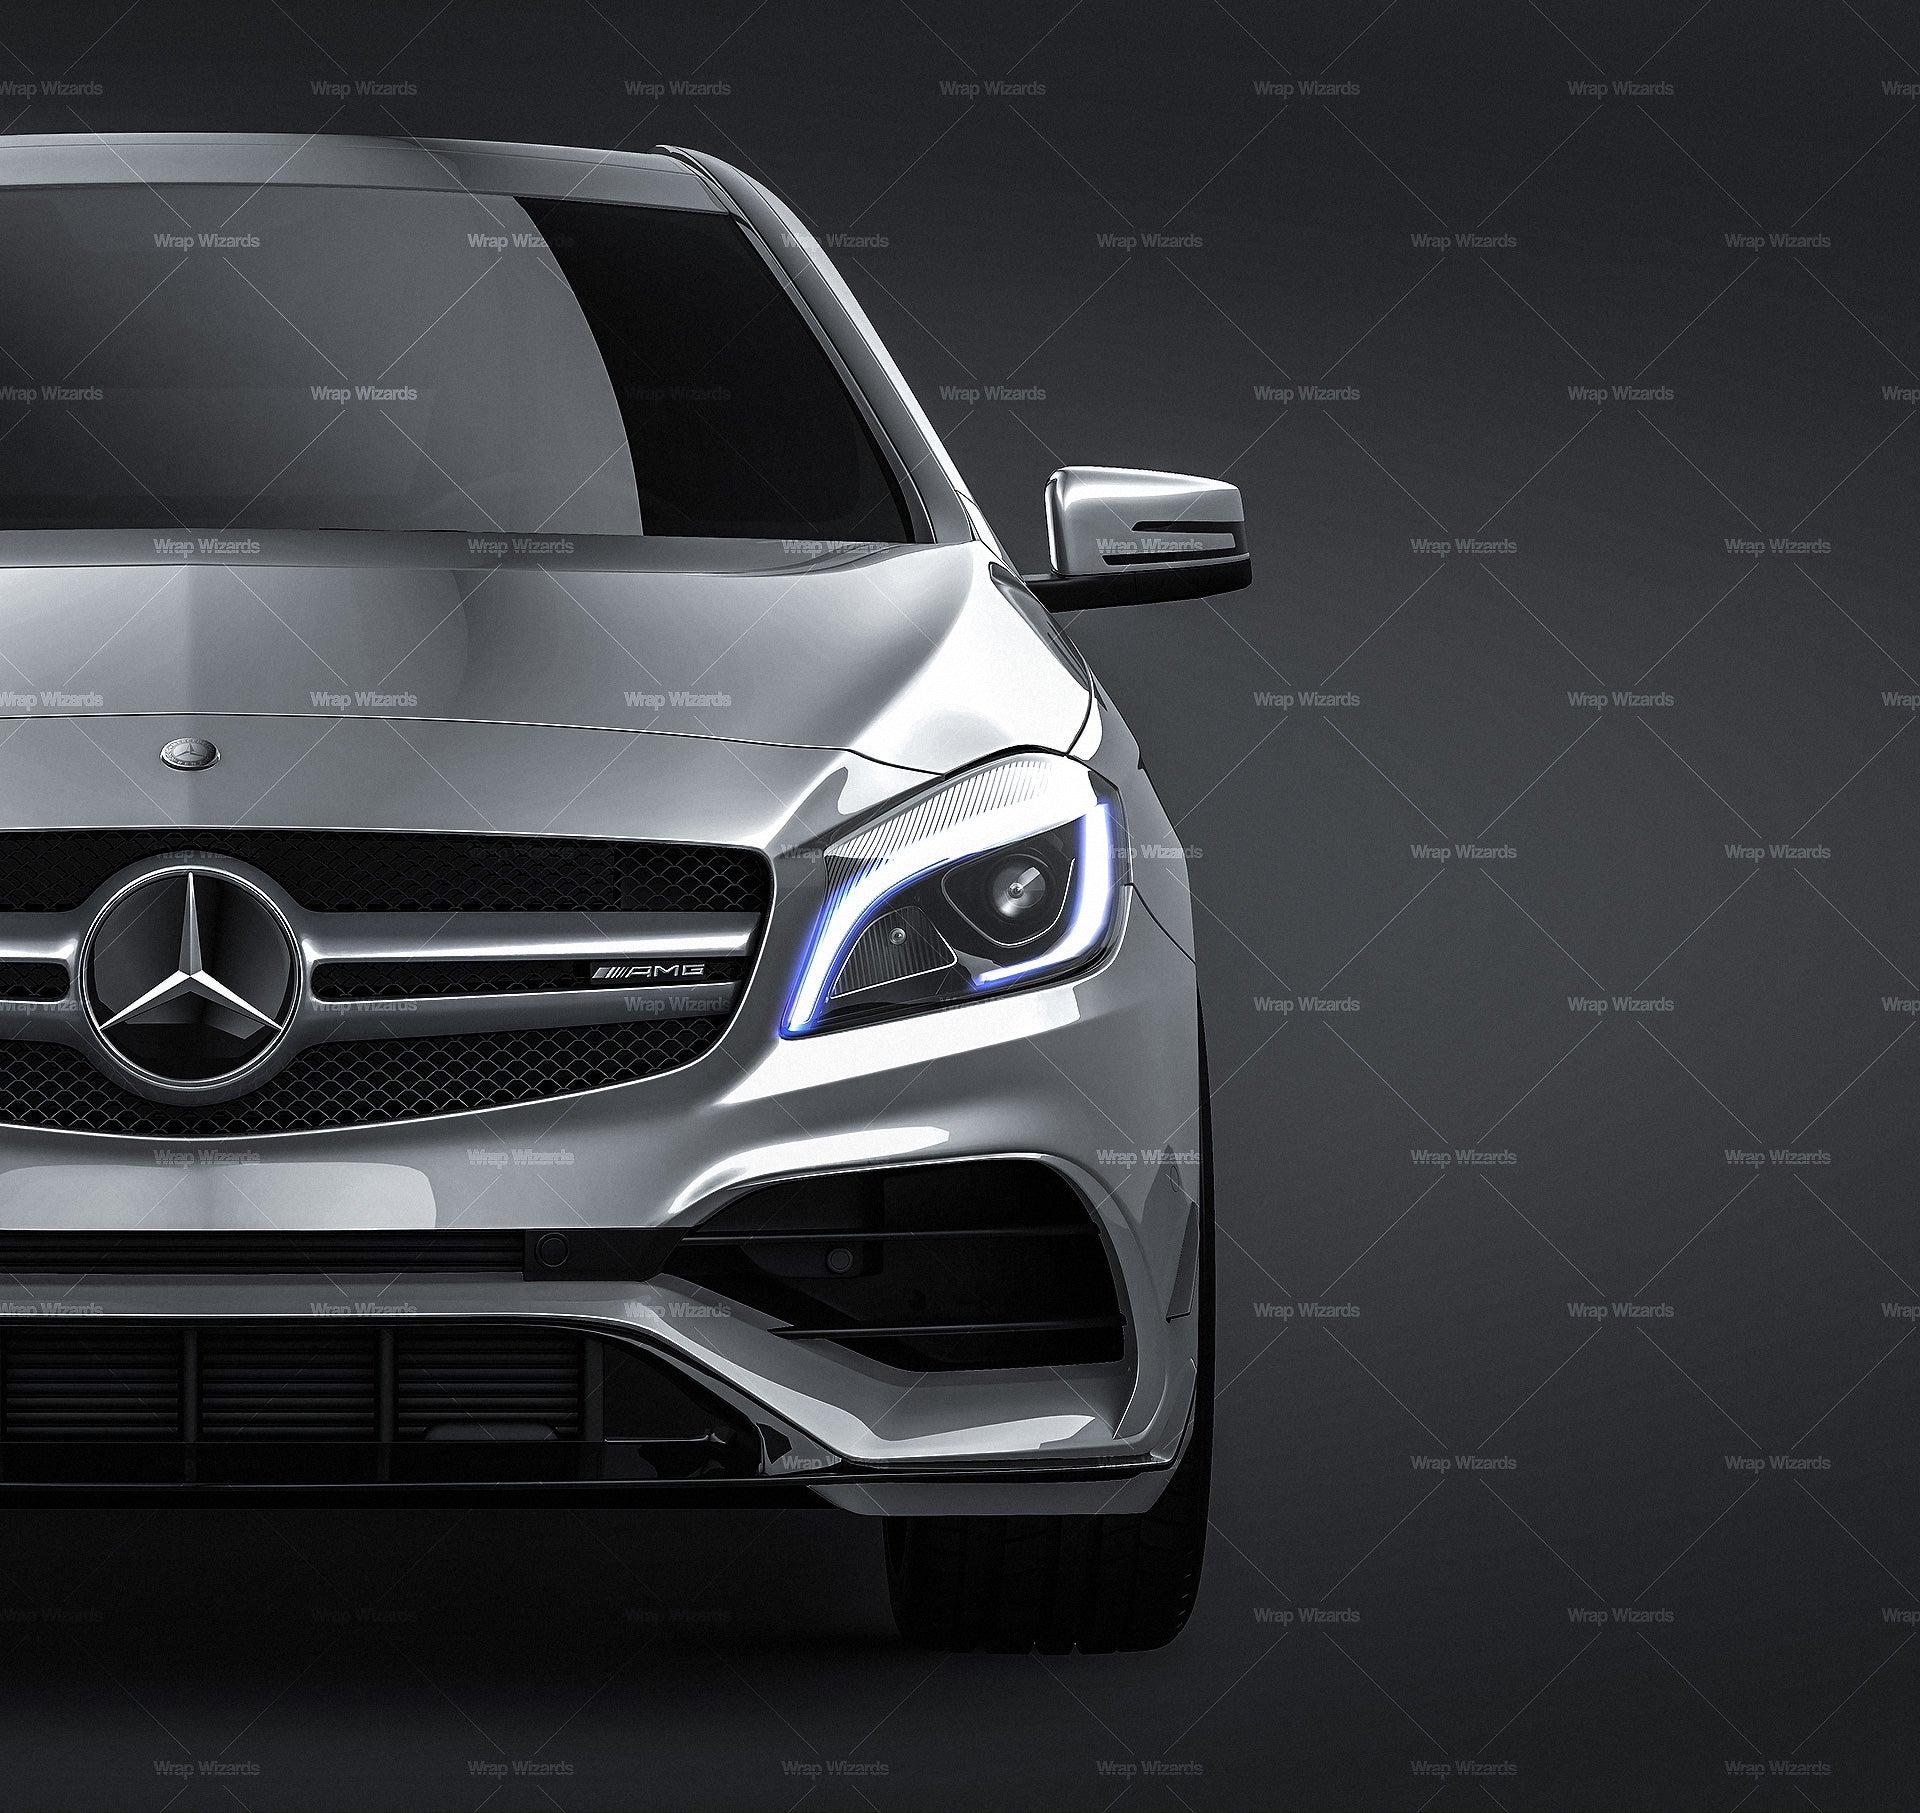 Mercedes-Benz A45 AMG 2017 - all sides Car Mockup Template.psd